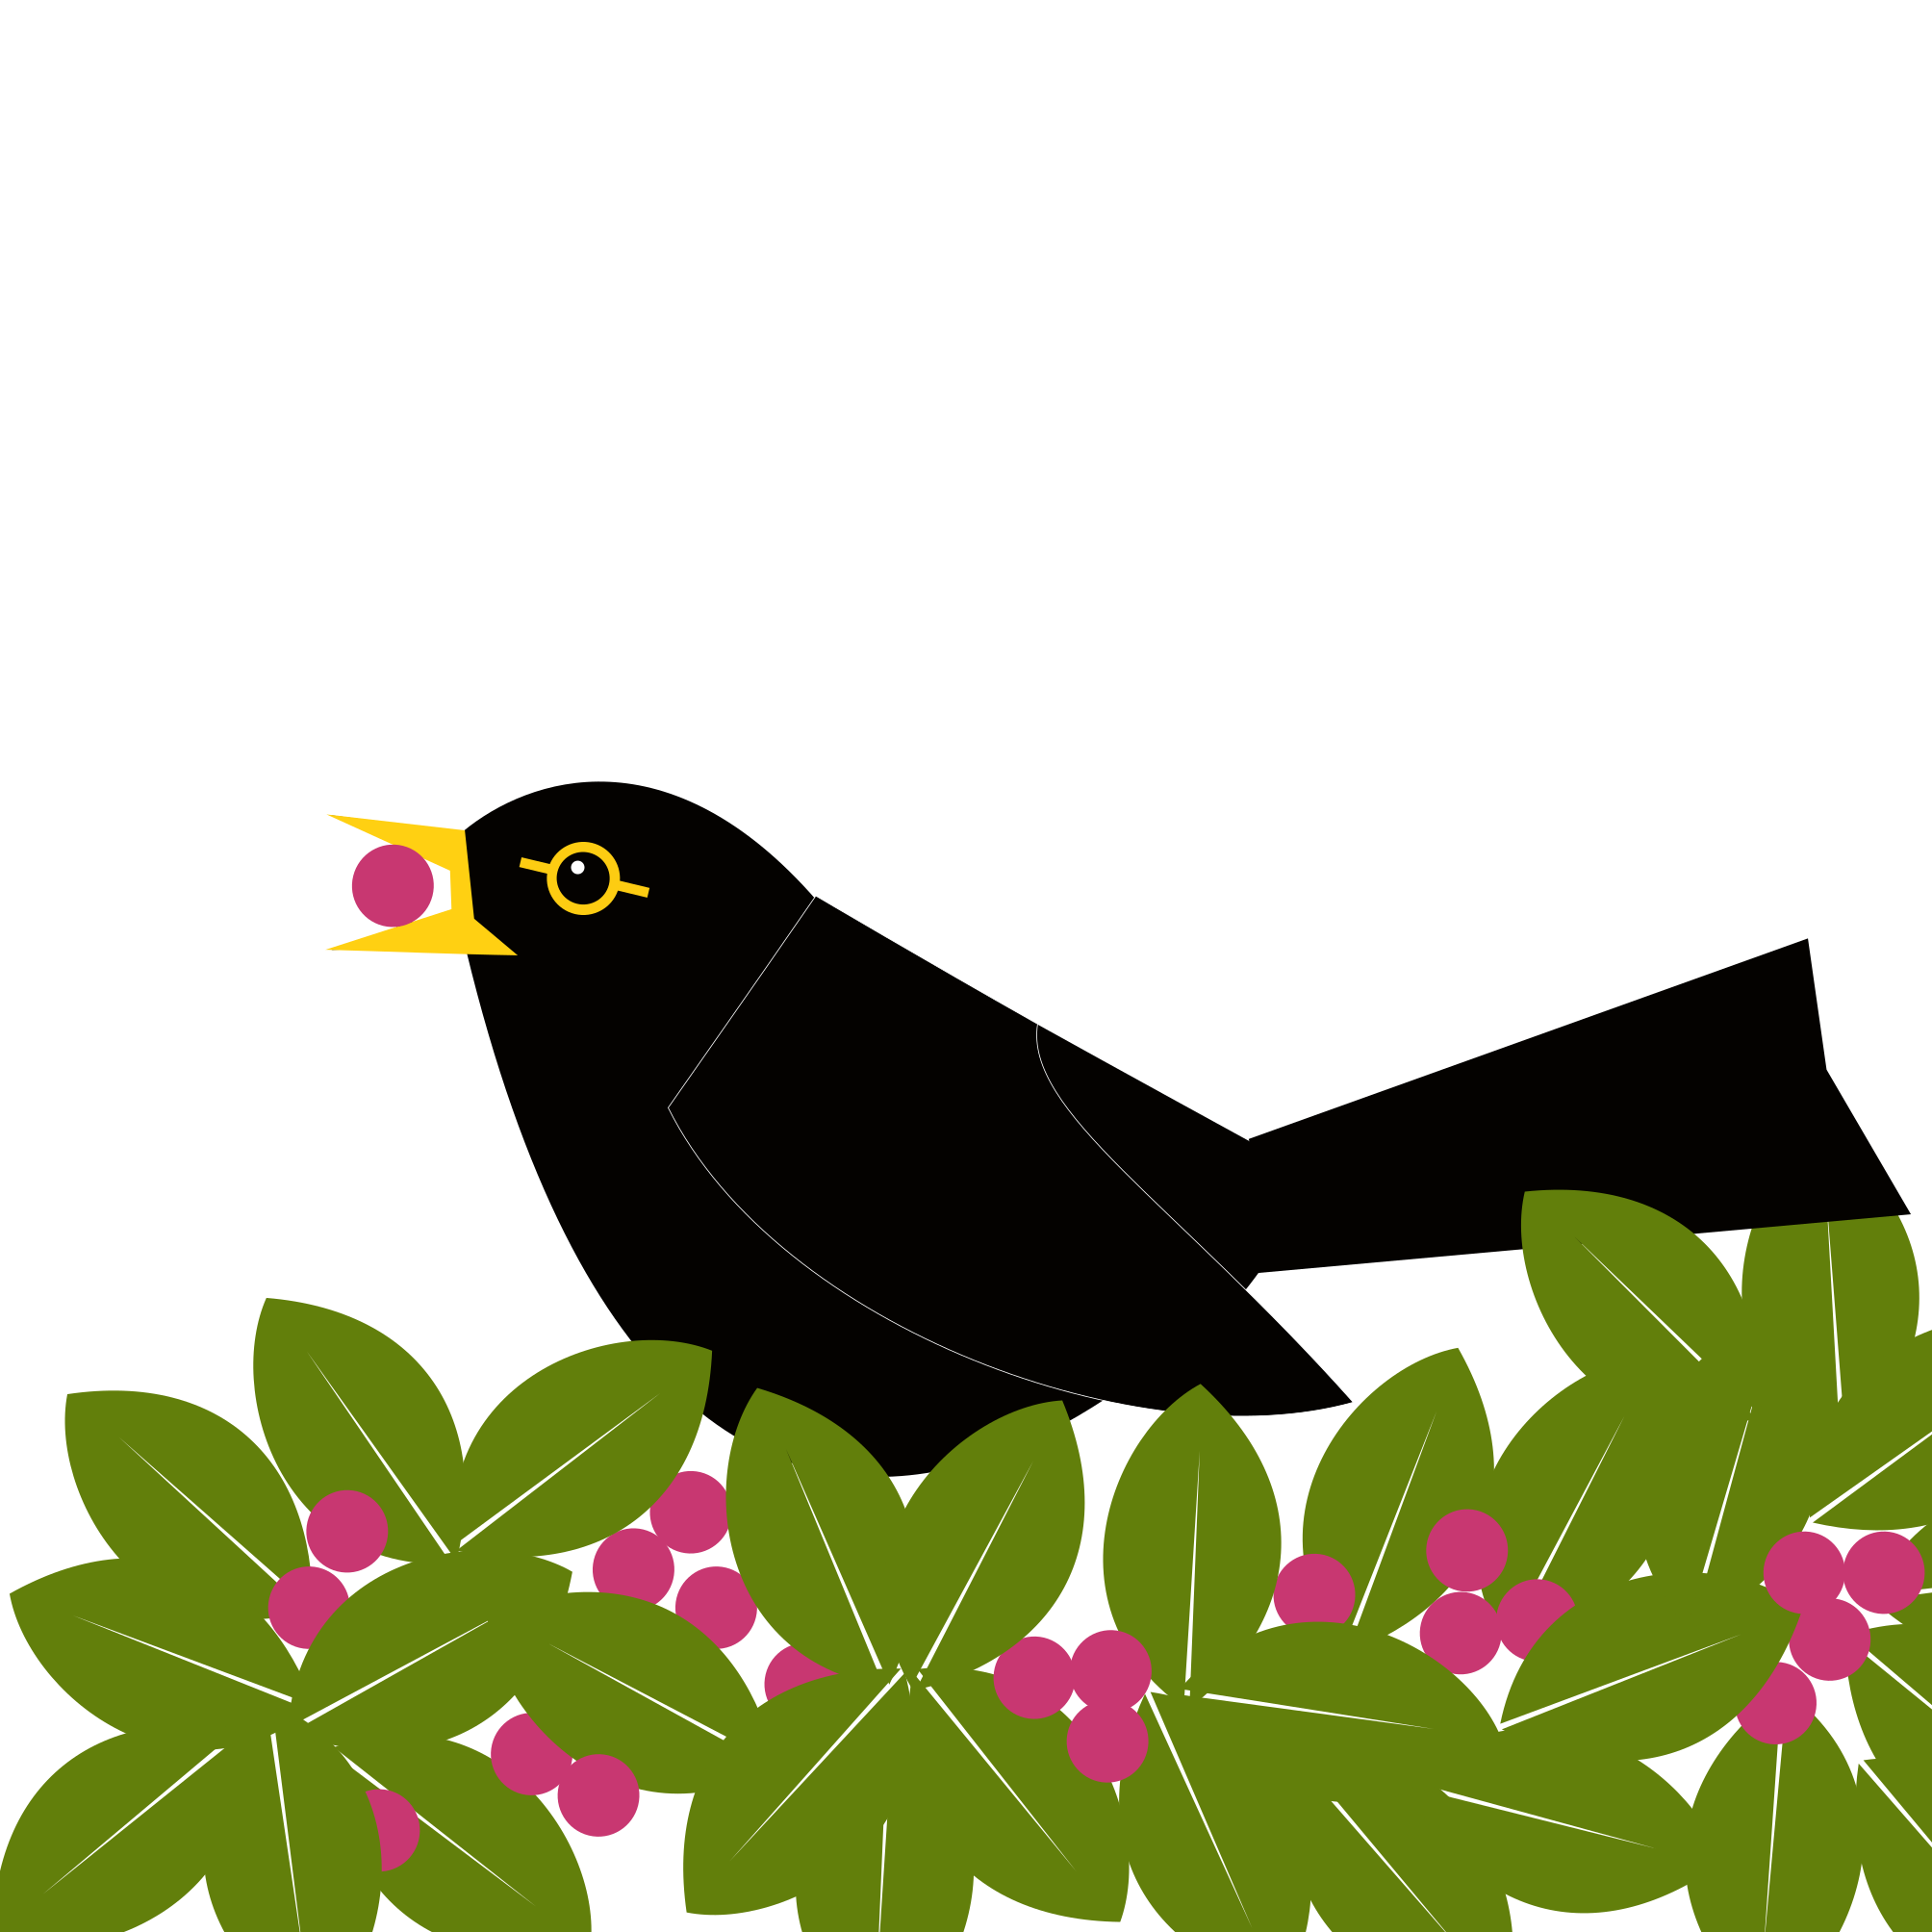 blackbird on top of a bush eating a berry. Simply drawn with flat bold colours on a white background